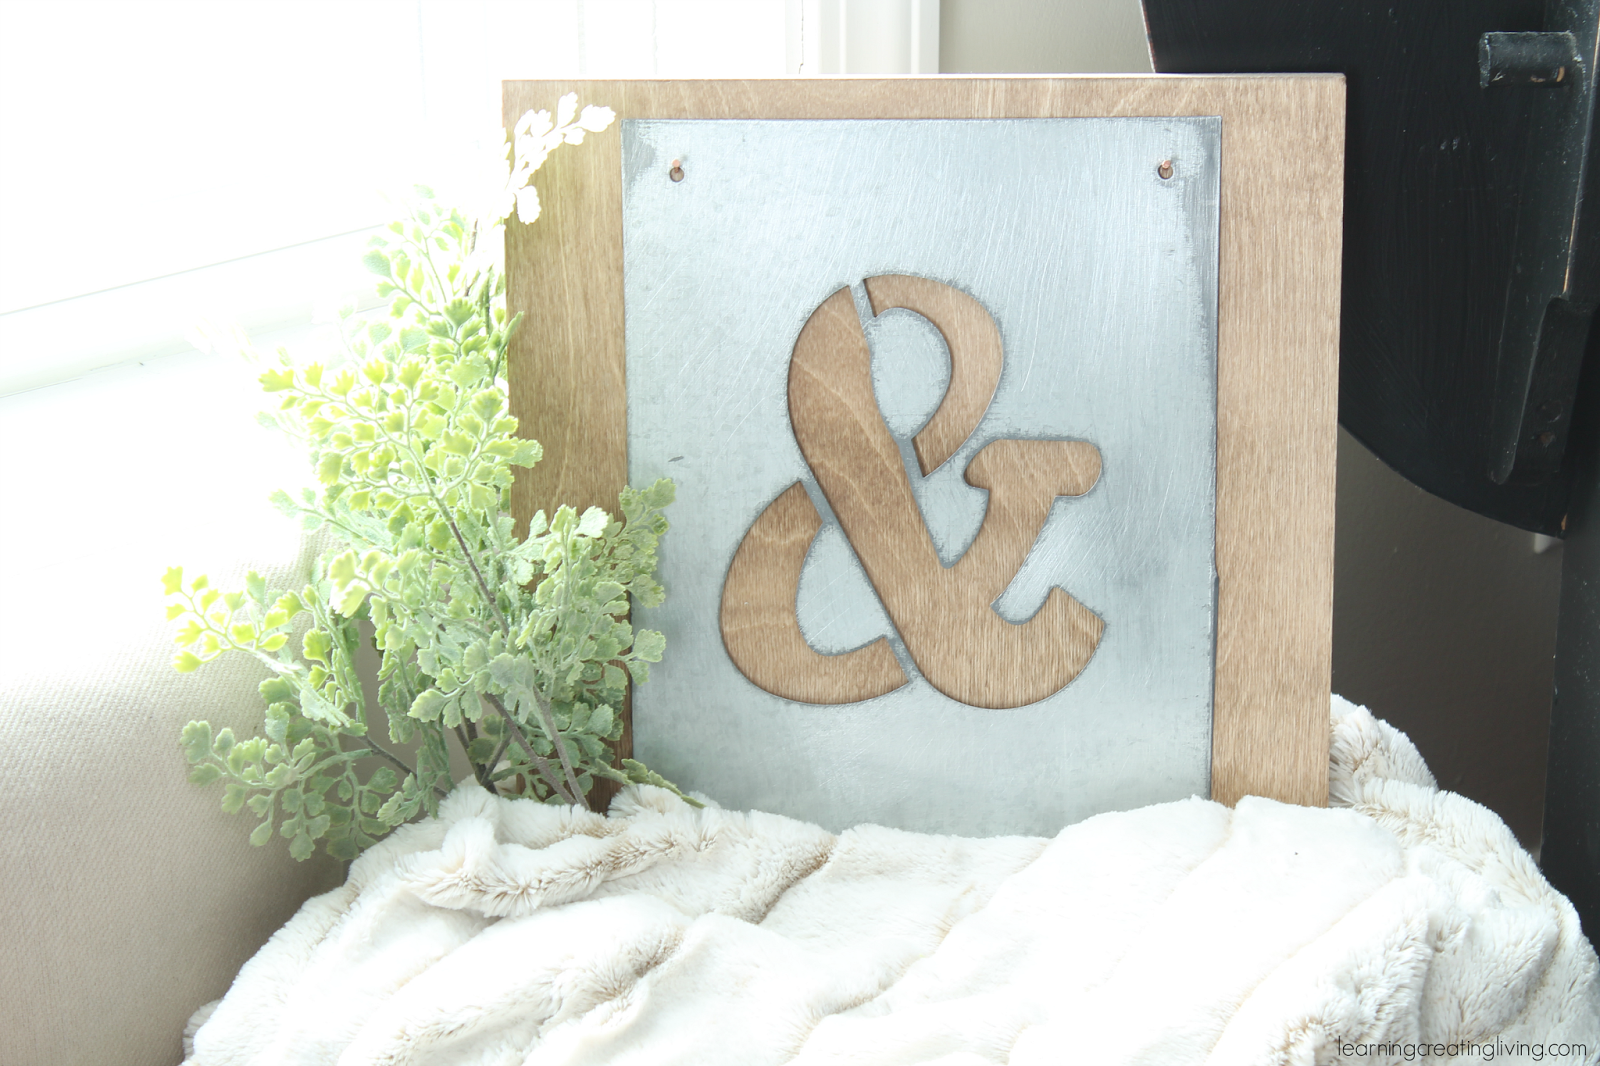 Diy Living: Creating Learning  sign ampersand Ampersand rustic Sign Metal Rustic